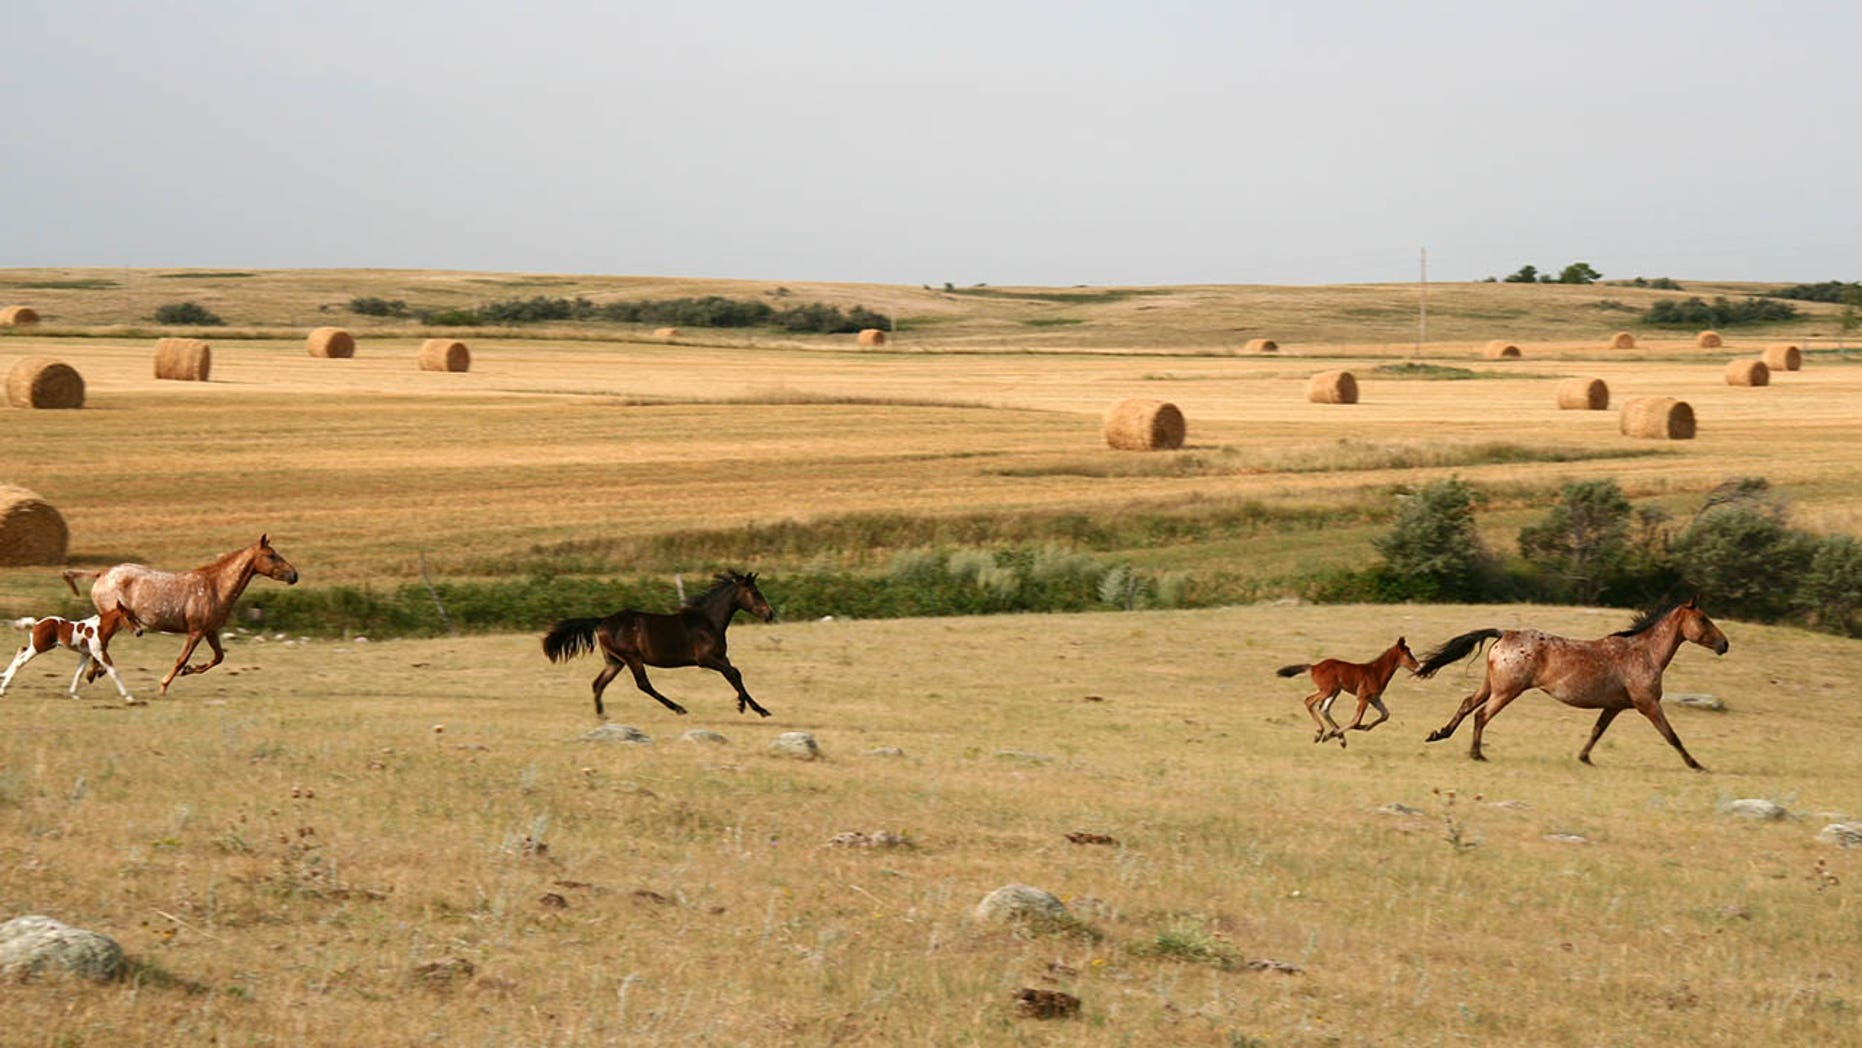 A $1,000 incentive is being offered by the U.S. government for those willing to adopt untrained wild horses or burros.